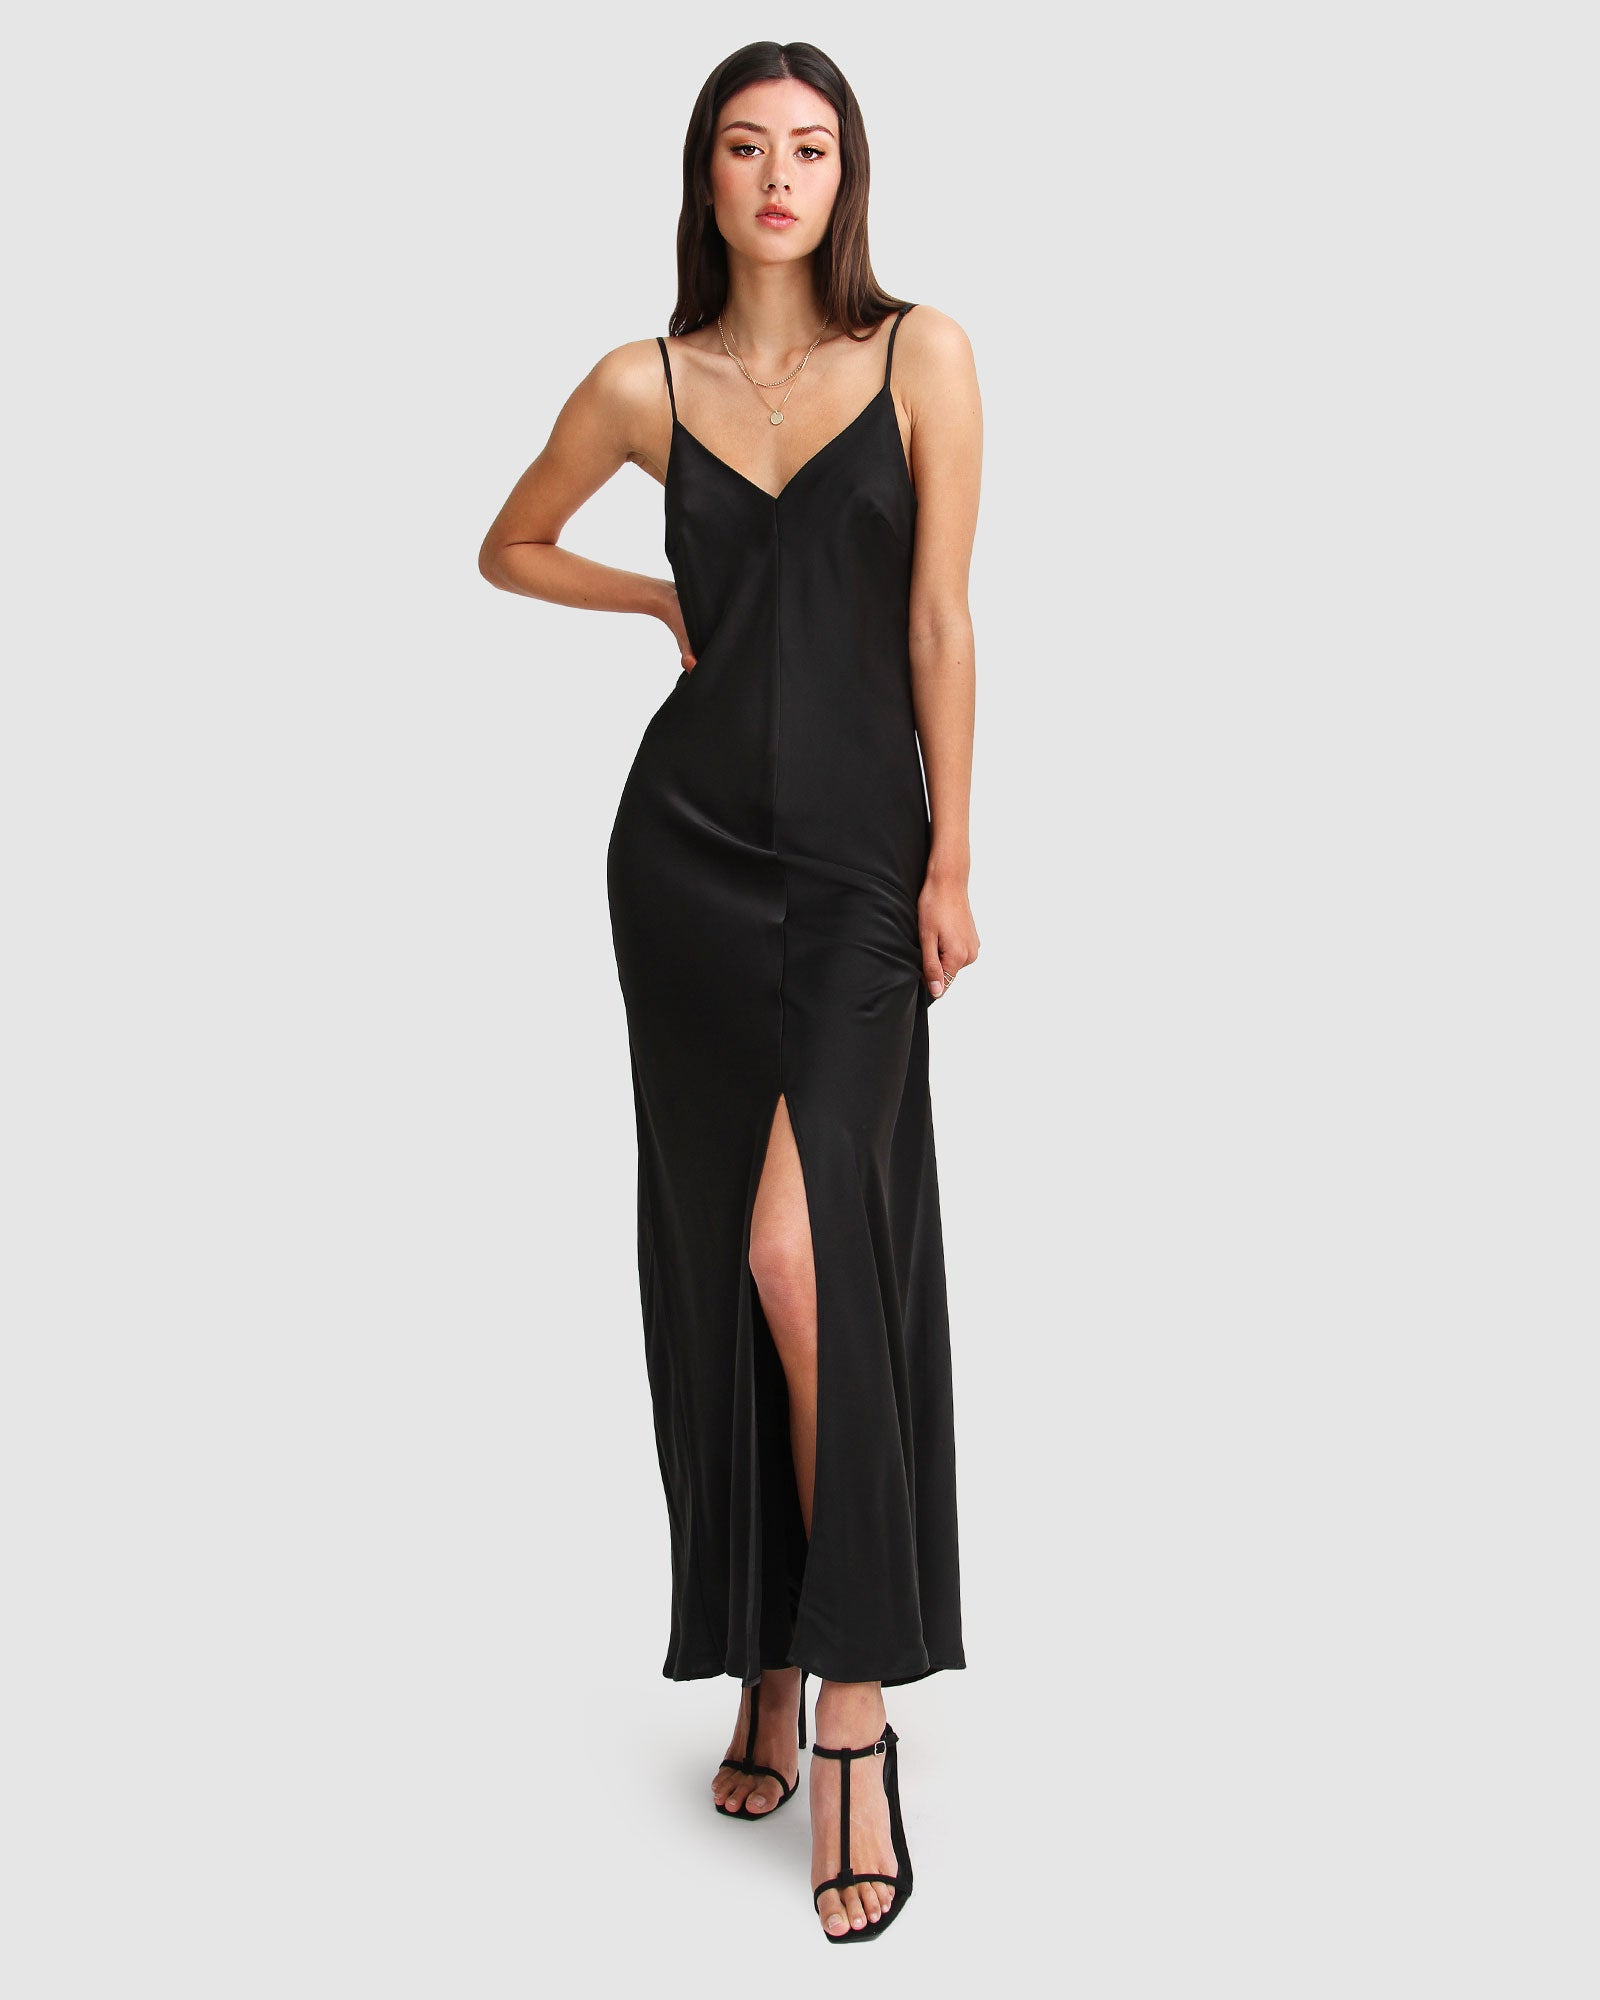 slip-up-black-long-dress-front.jpg